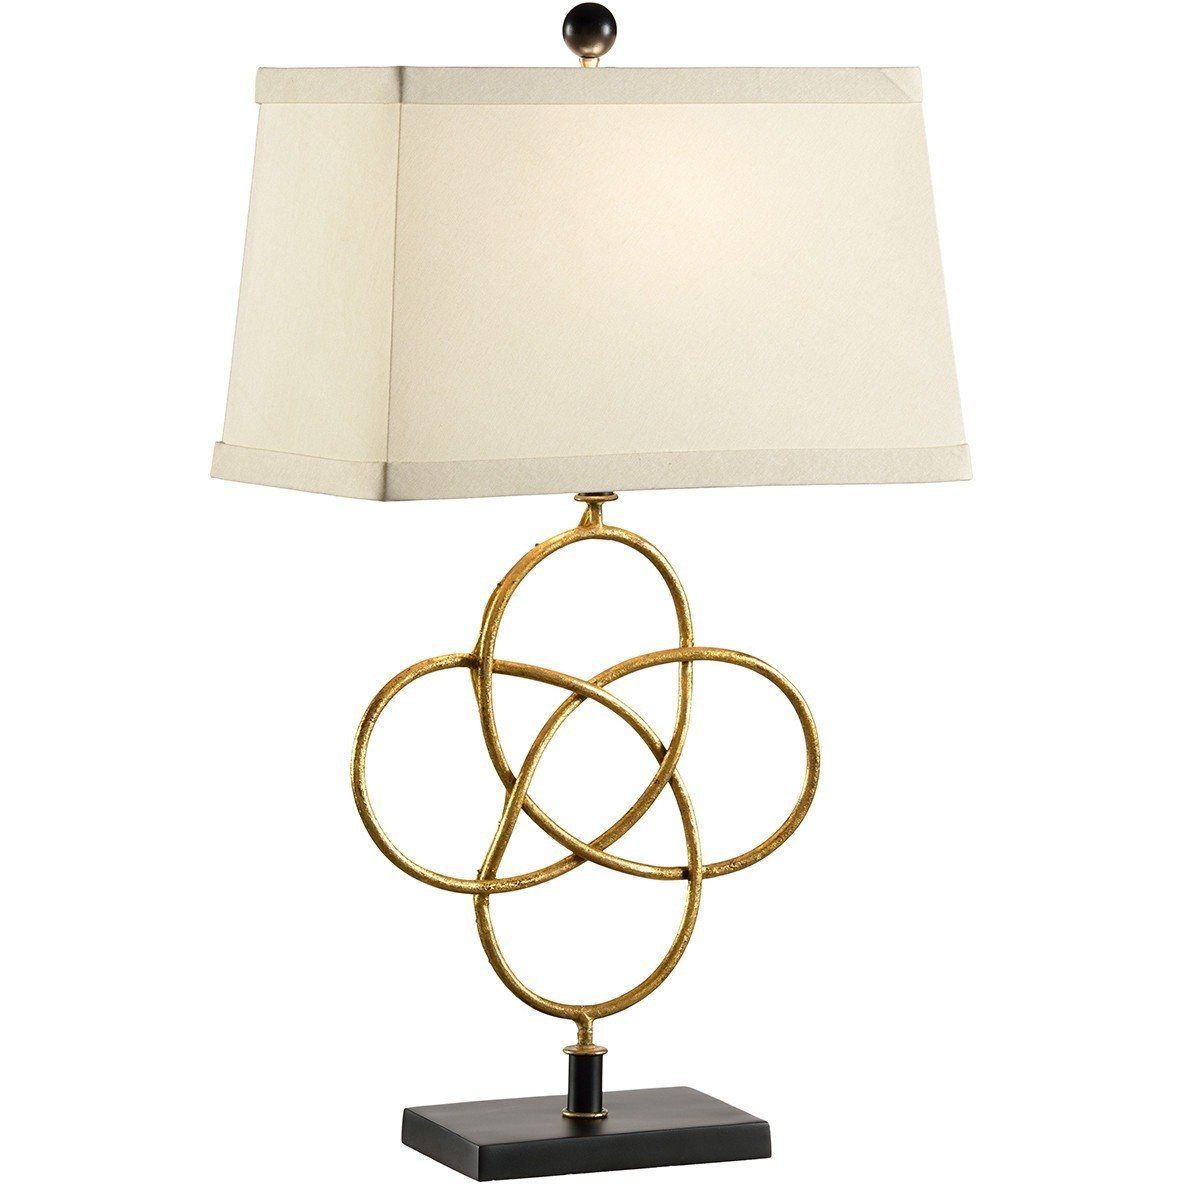 Chelsea House Loose Knot Gold Table Lamp 68589 - LOVECUP